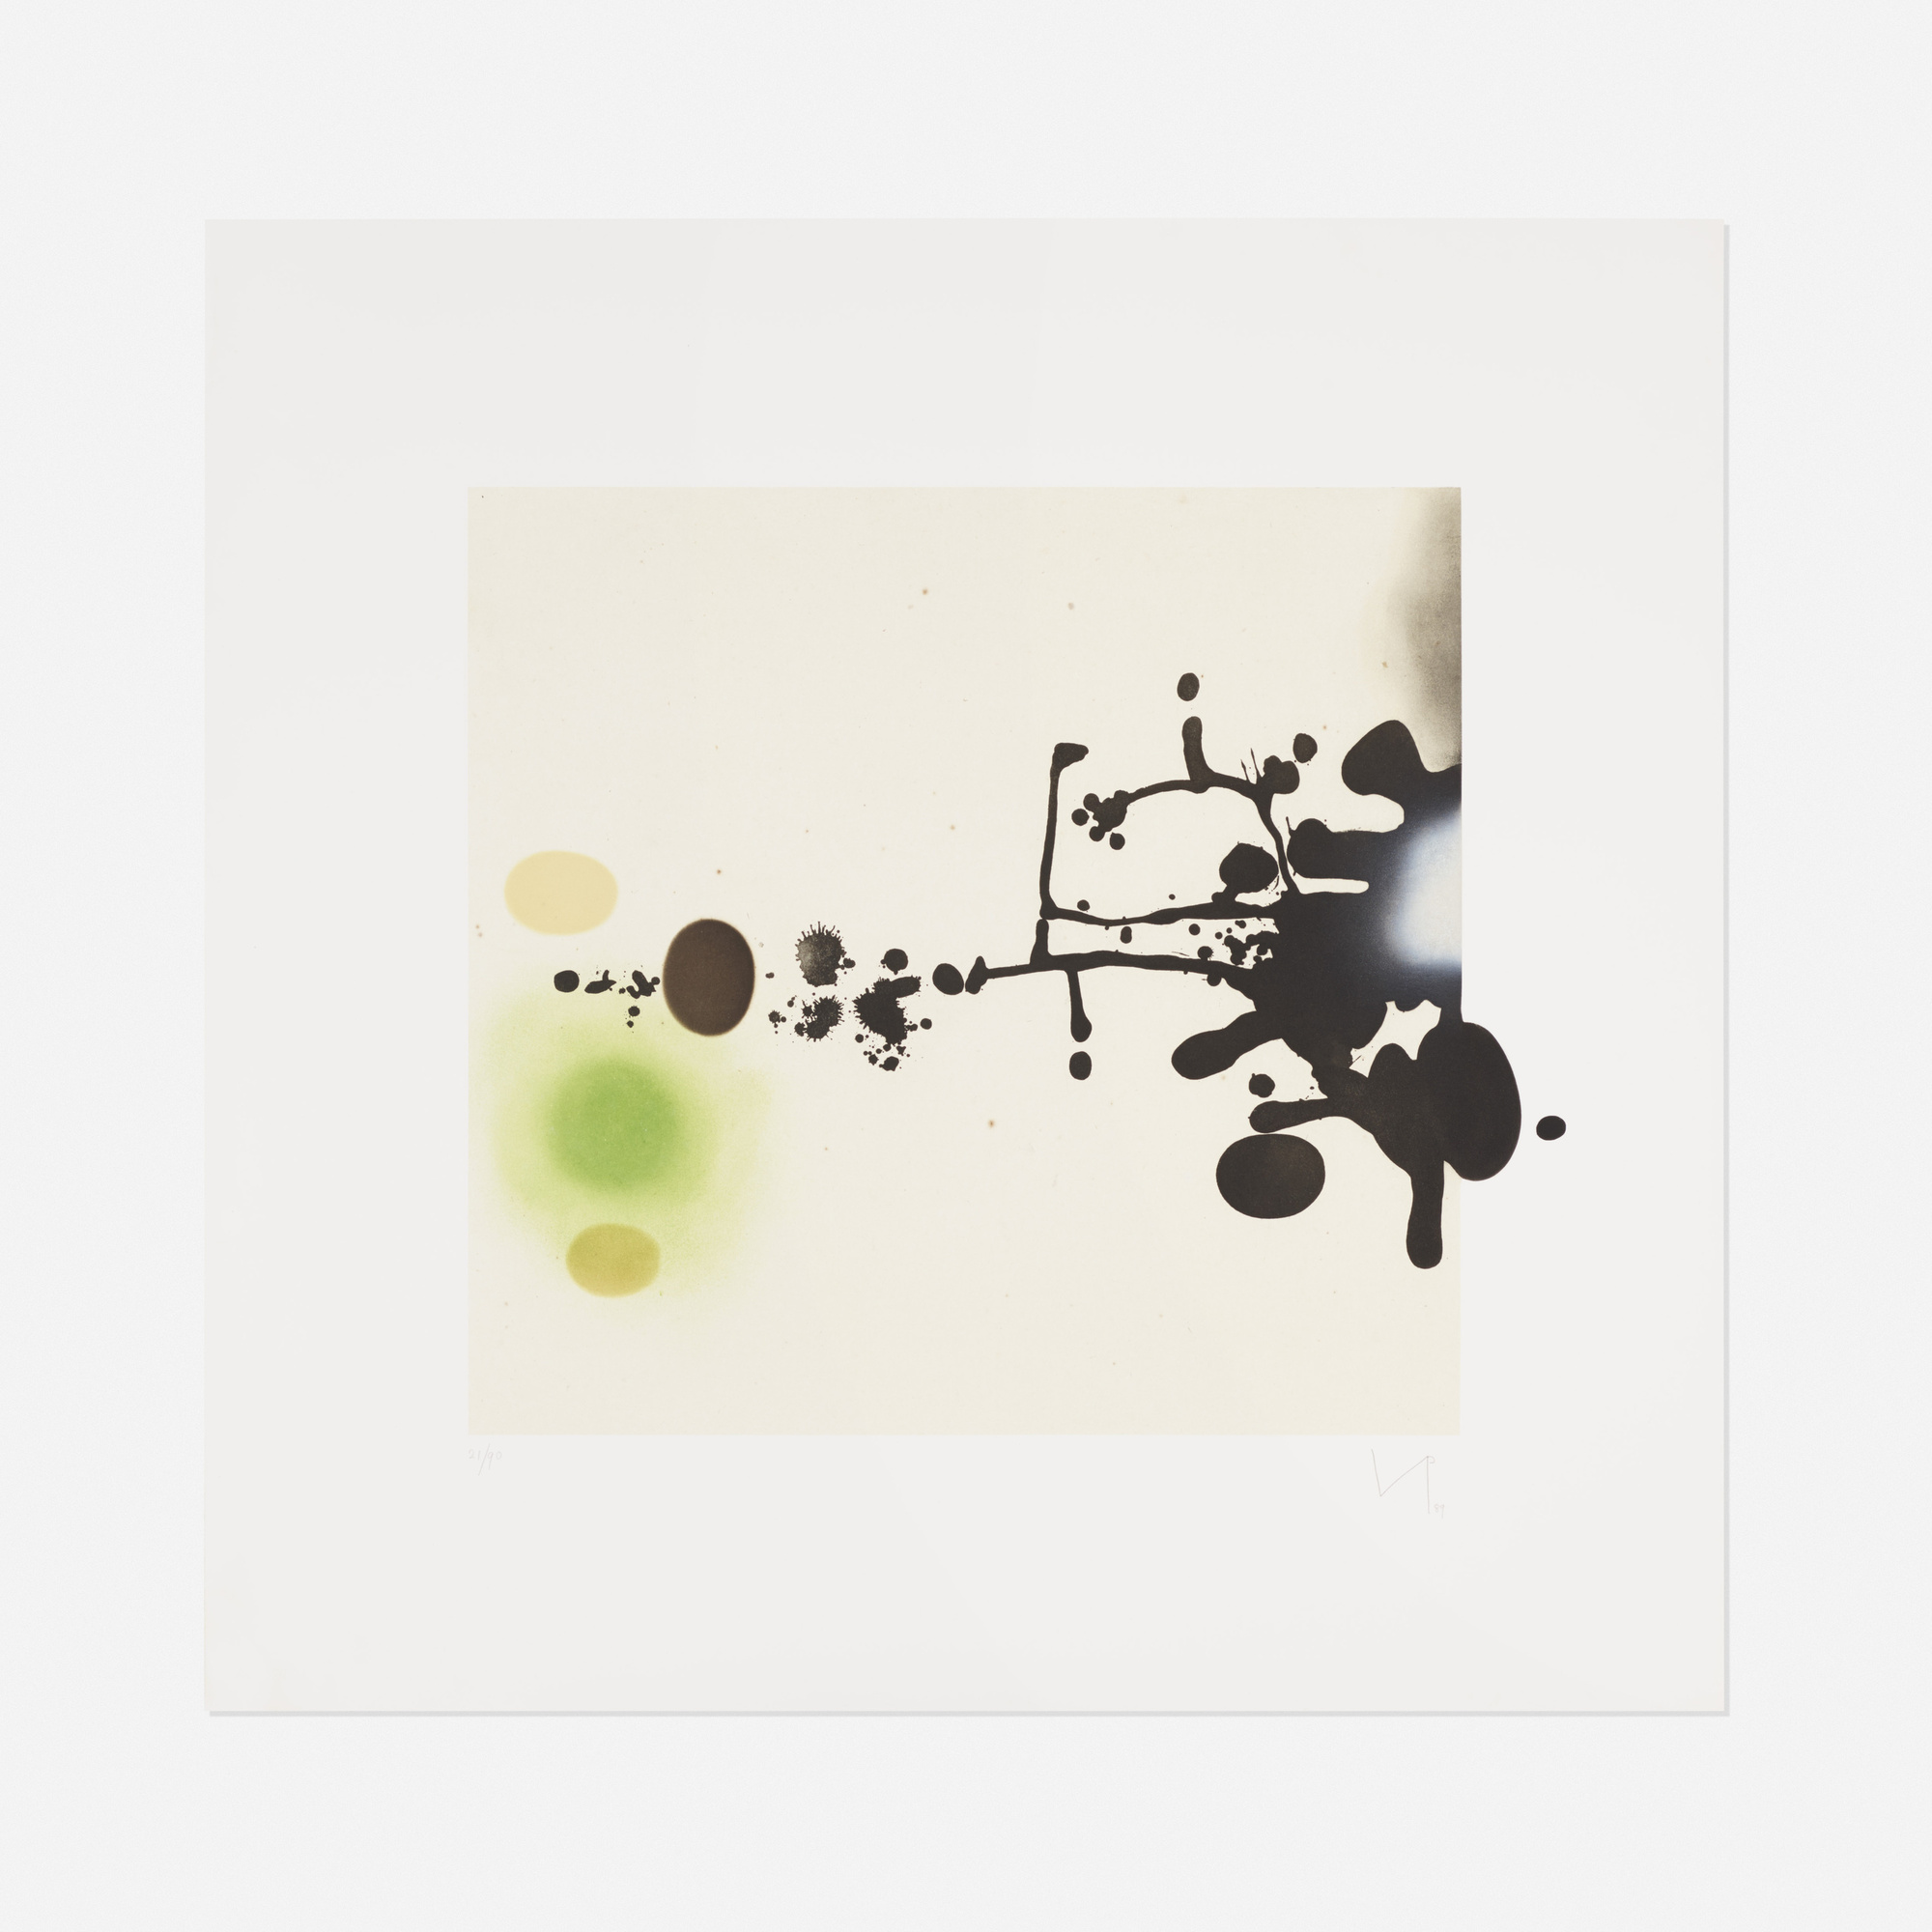 146: Victor Pasmore / Untitled No. 2 (1 of 1)